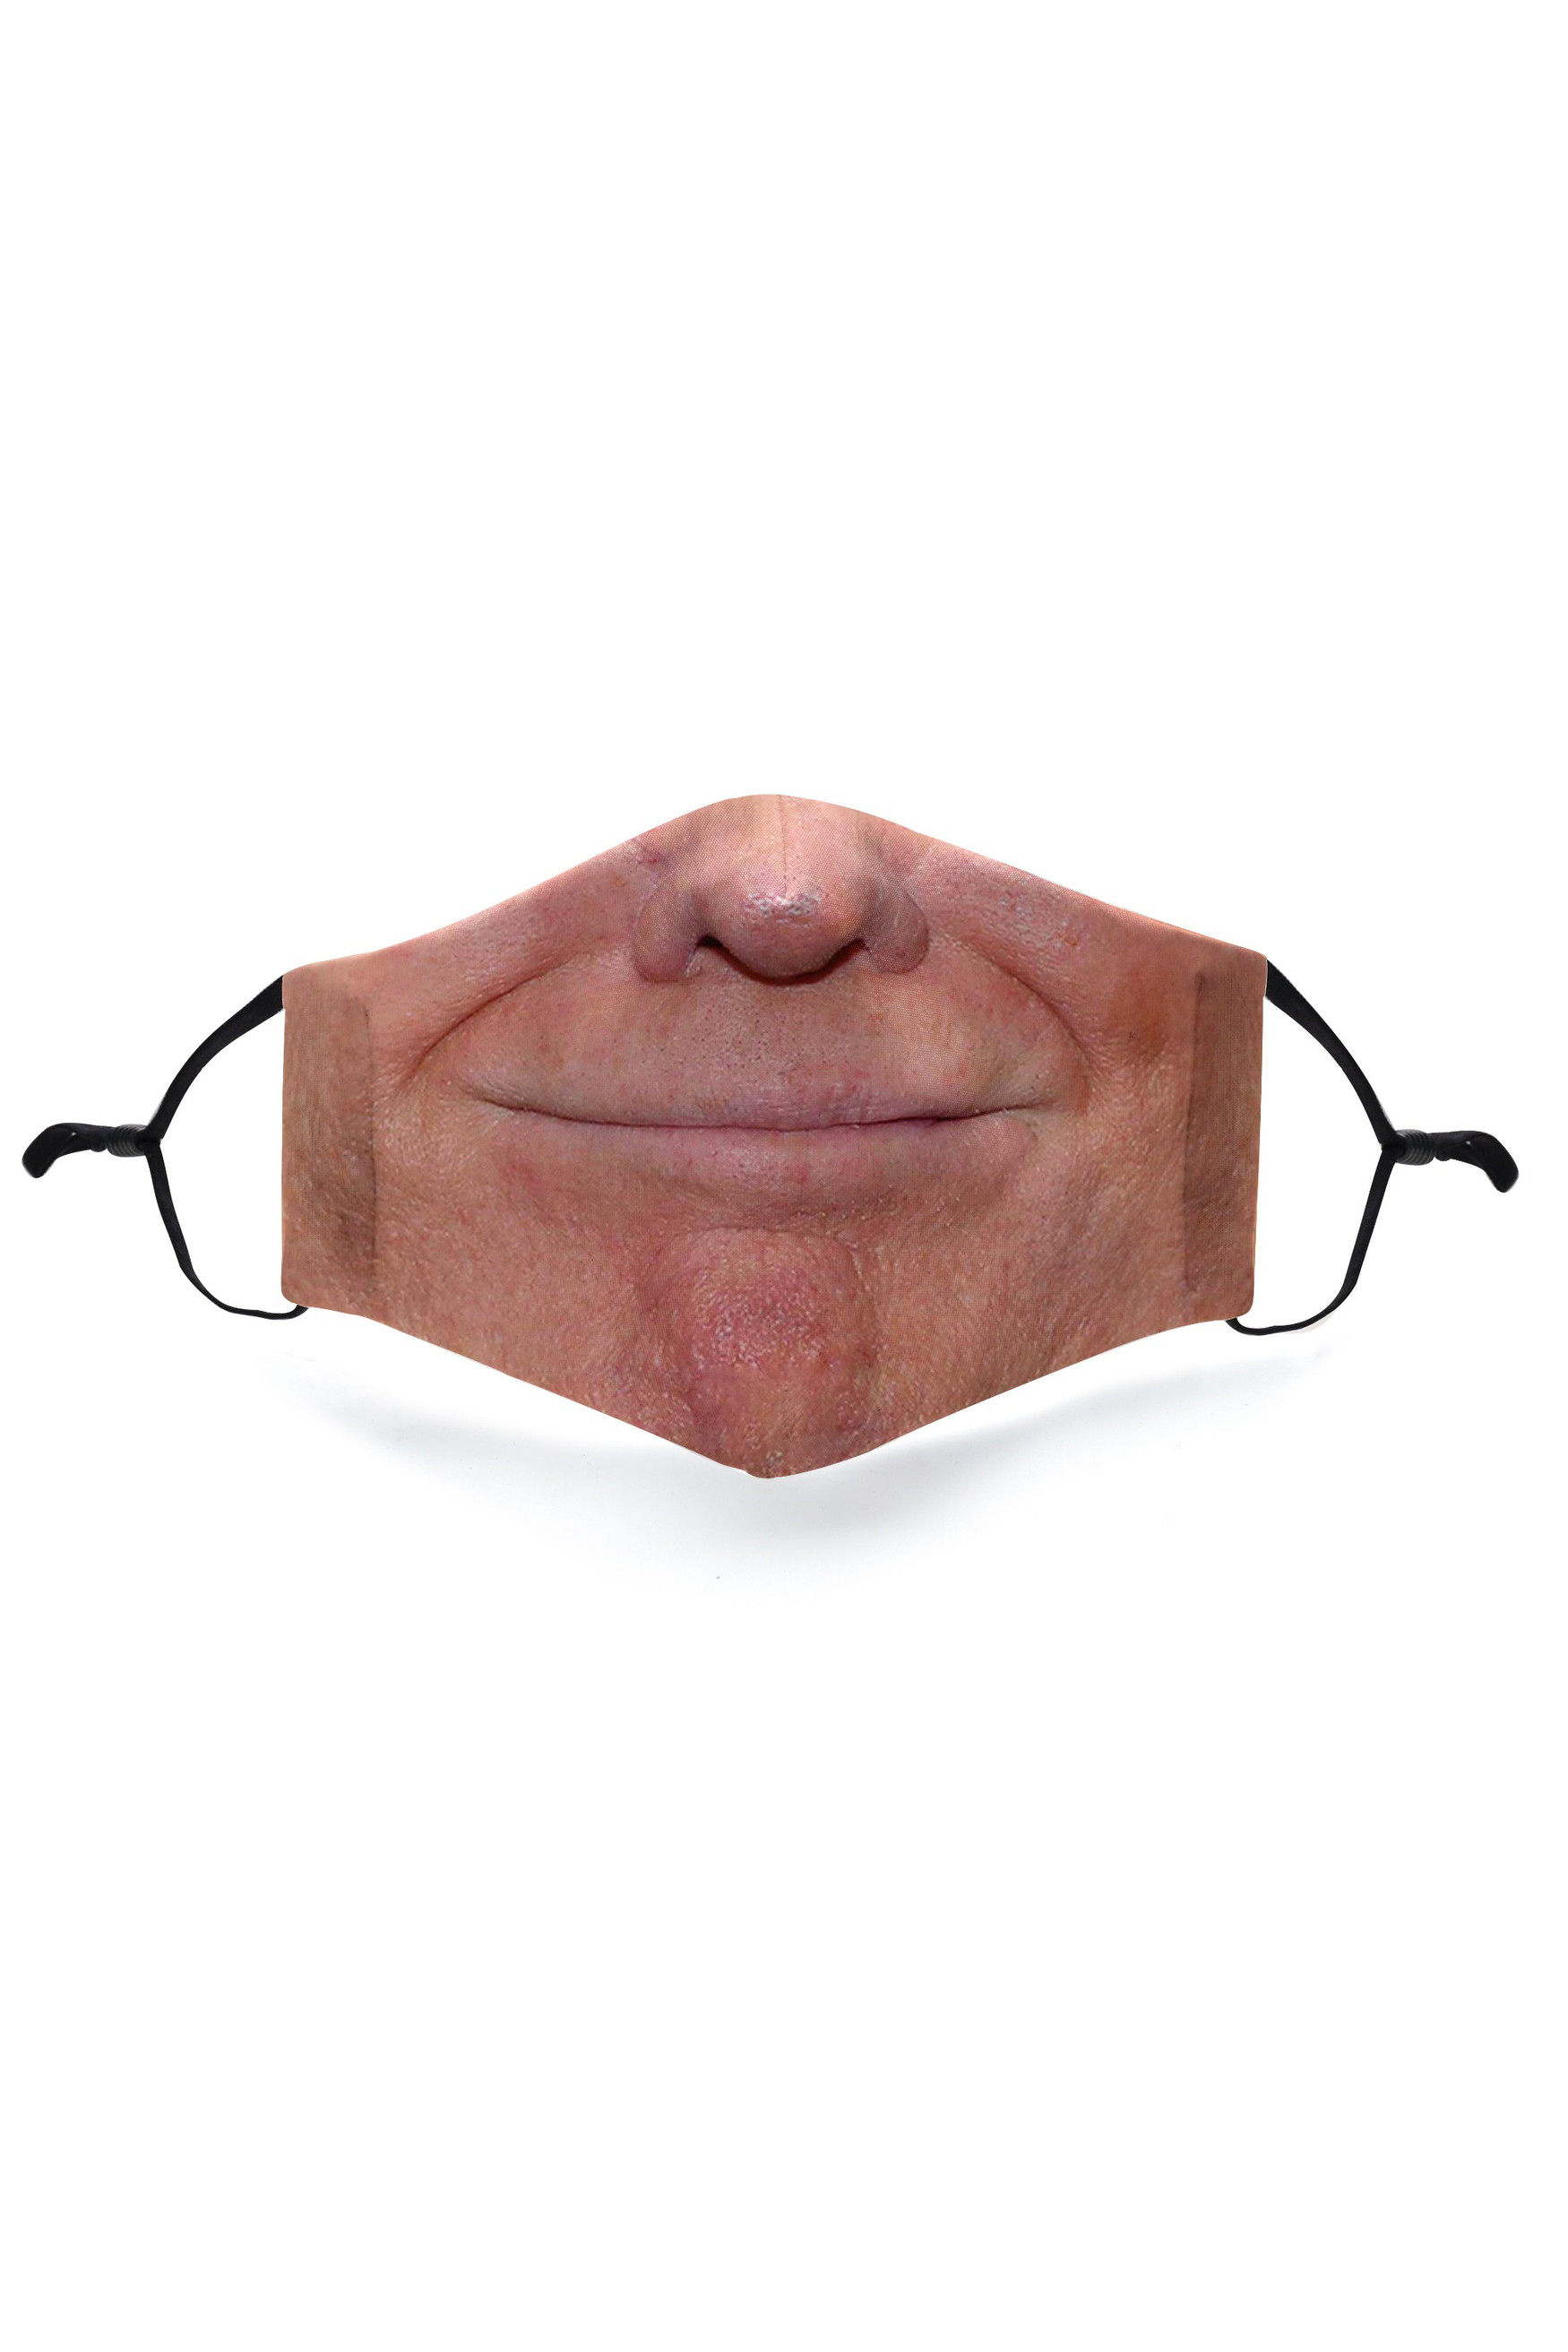 Smiling Trump Graphic Print Face Mask